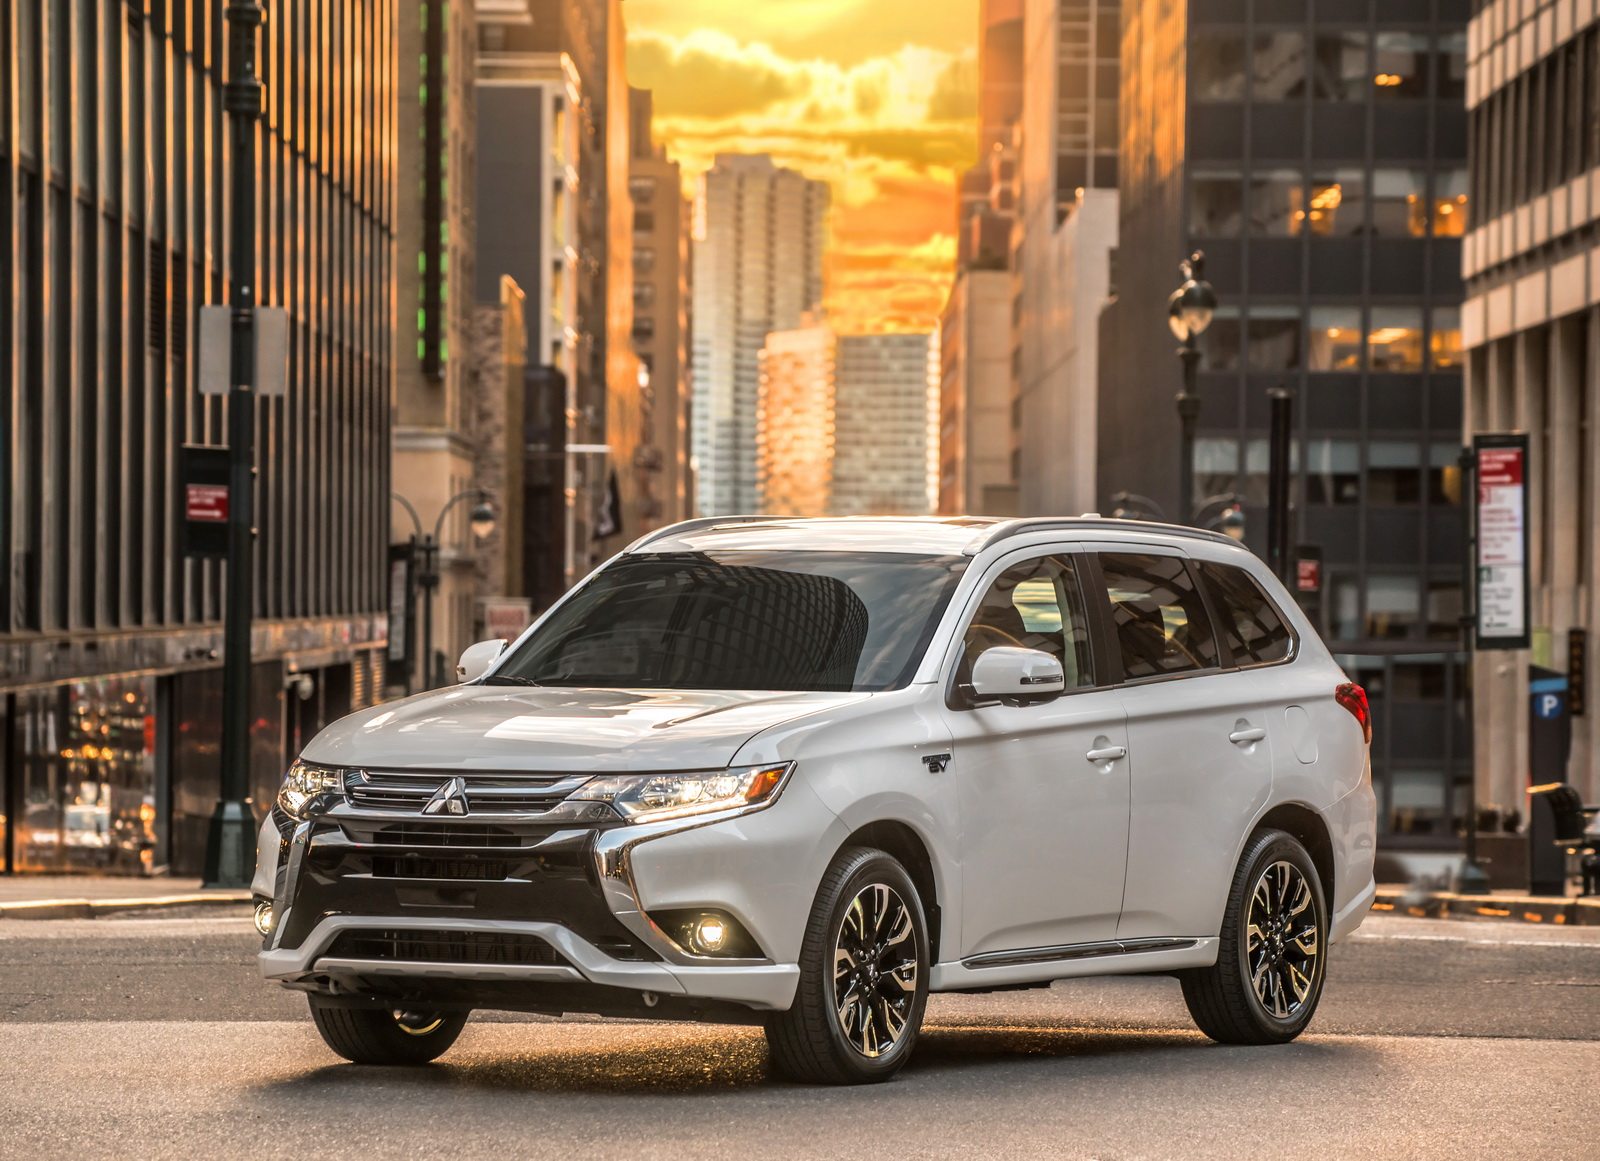 2018 mitsubishi outlander. simple 2018 blocking ads can be devastating to sites you love and result in people  losing their jobs negatively affect the quality of content in 2018 mitsubishi outlander